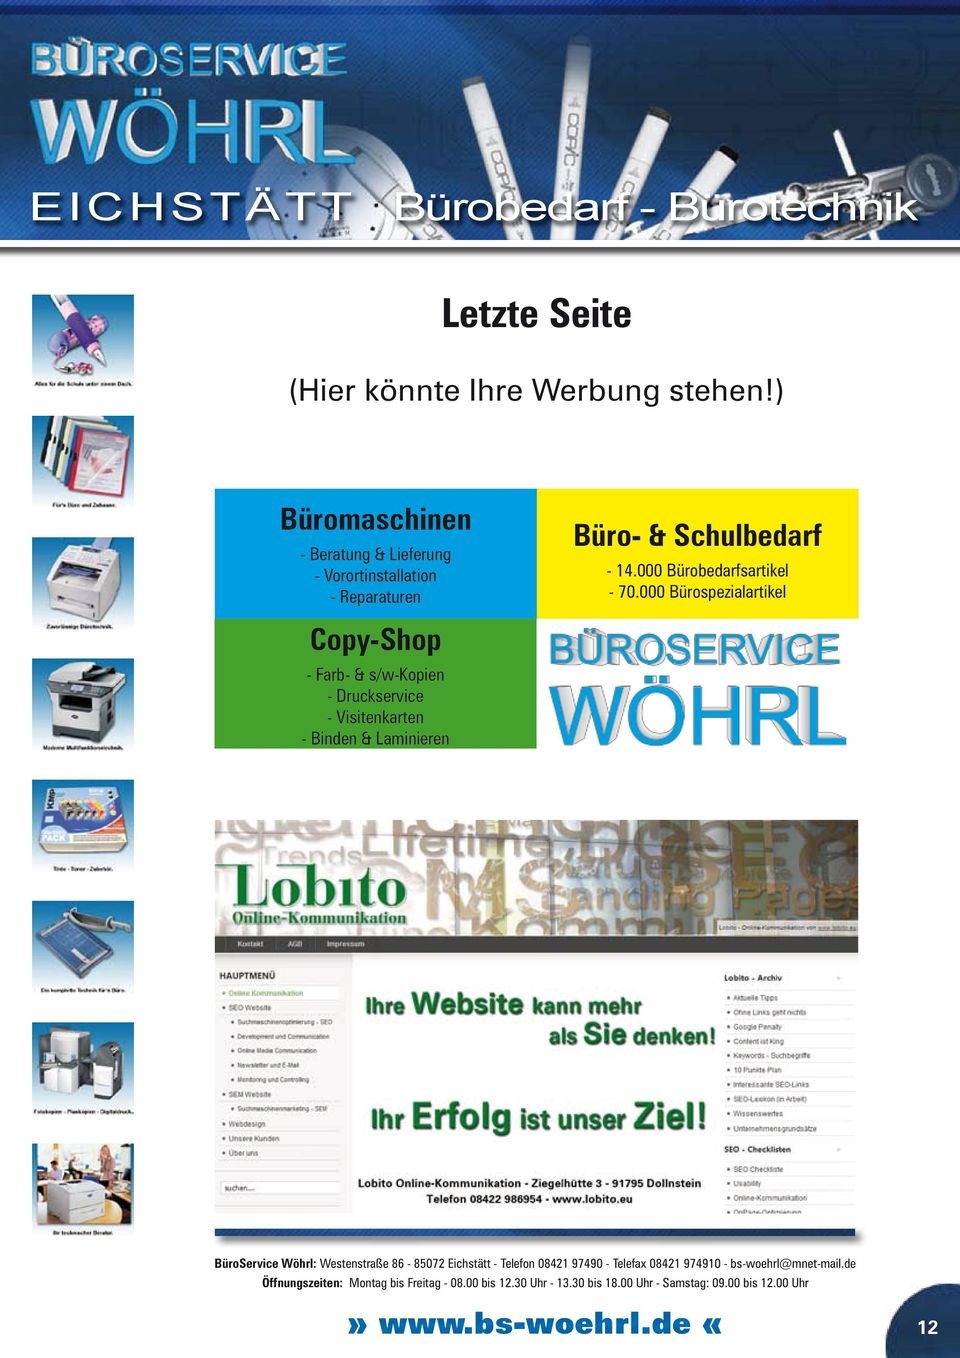 Reparaturen Copy-Shop - Farb- & s/w-kopien - Druckservice -